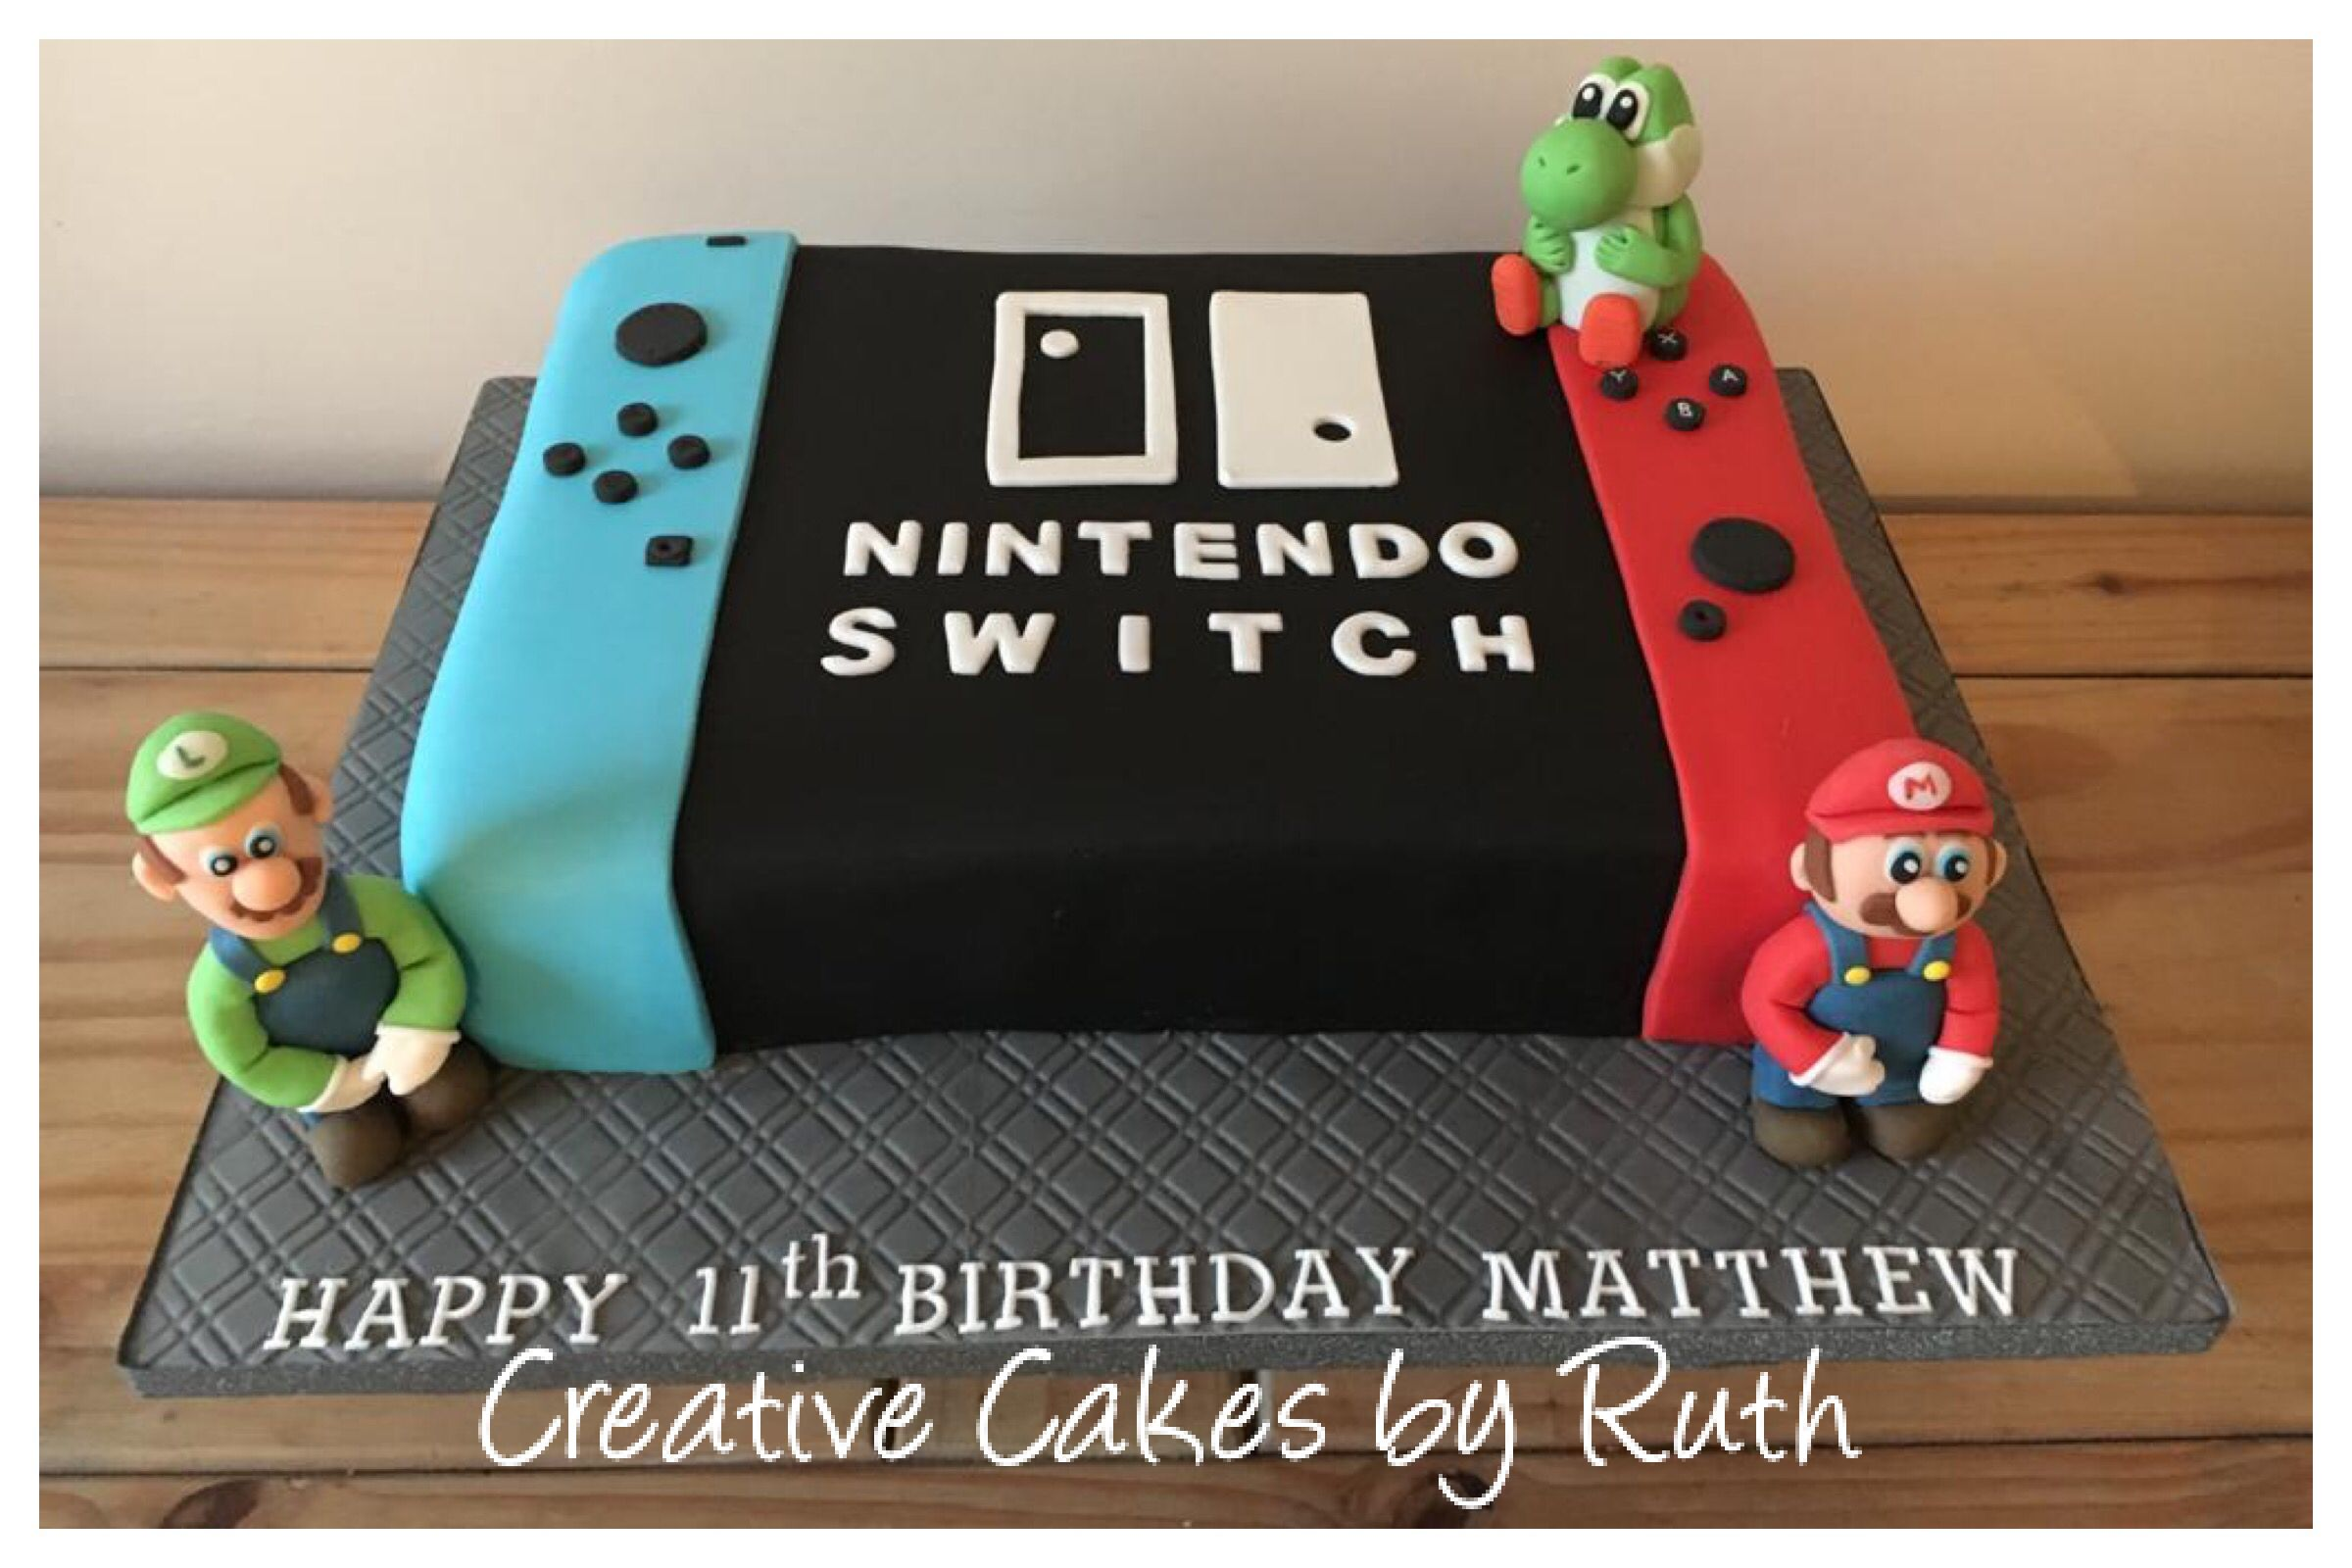 Swell Video Games Birthday Party Image By Maria Ritter On Jameson Funny Birthday Cards Online Alyptdamsfinfo